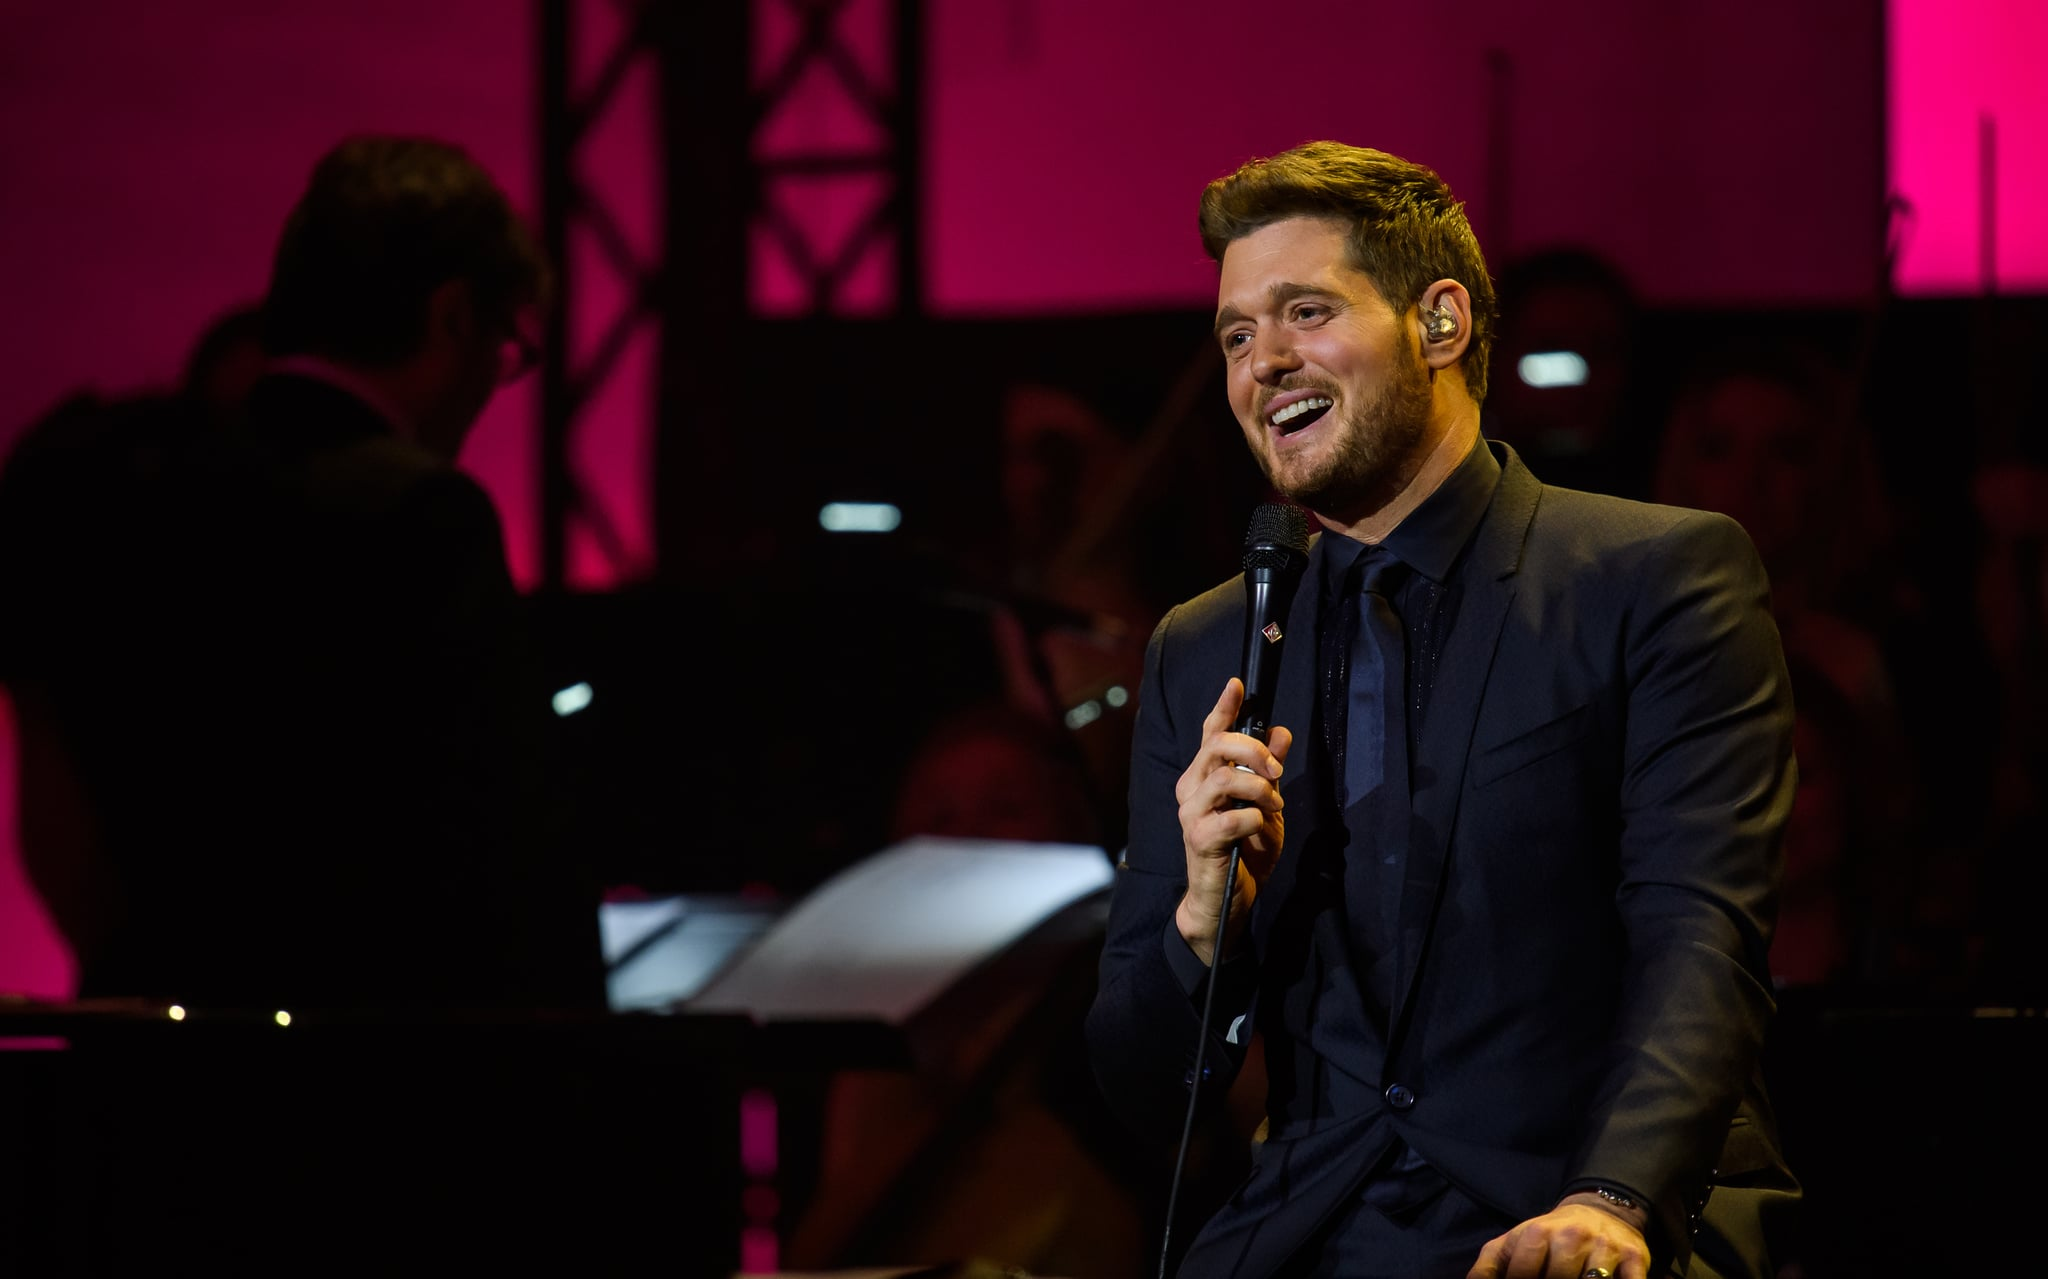 MUNICH, GERMANY - DECEMBER 04: Singer Michael Buble performs live on stage during the Telekom Street Gigs at Wappenhalle on December 4, 2018 in Munich, Germany. (Photo by Joerg Koch/Getty Images)